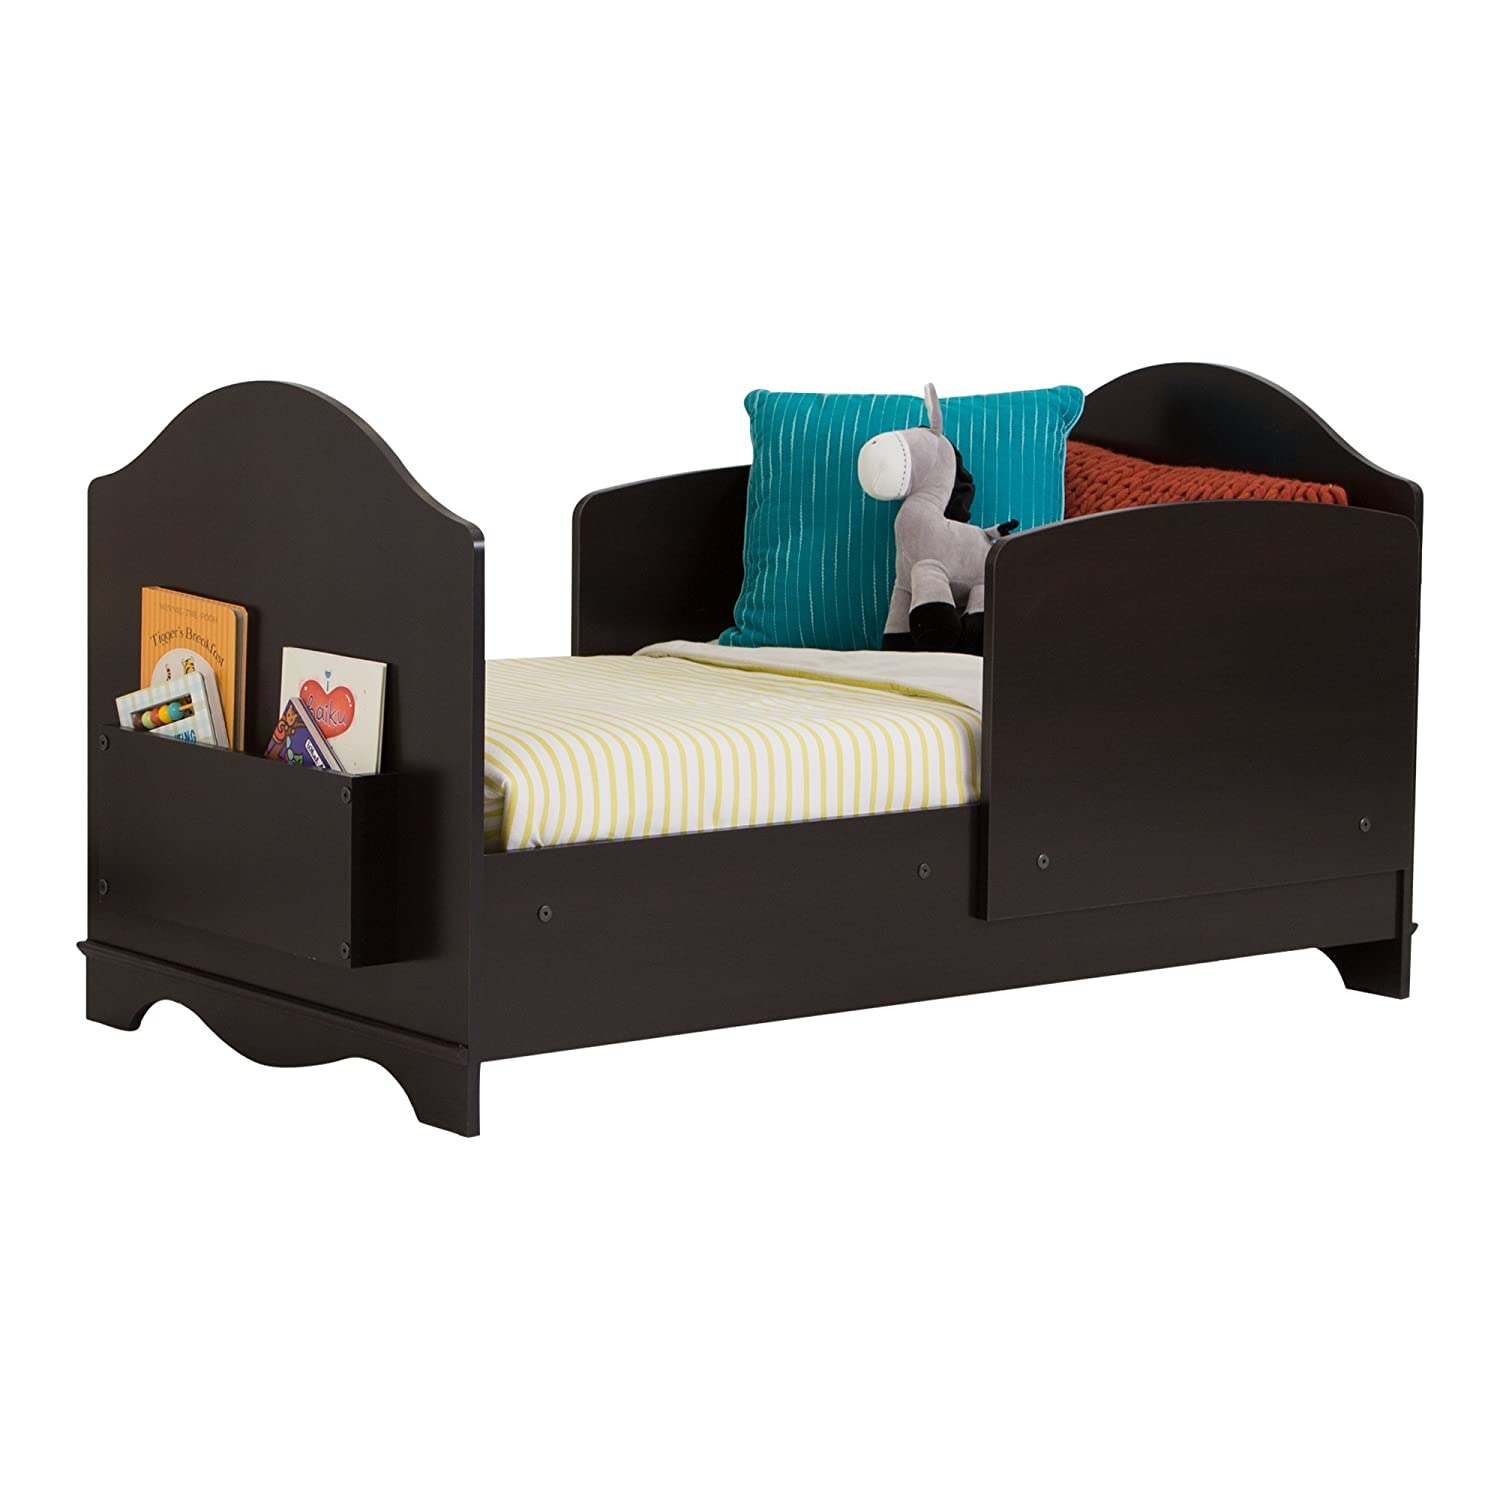 South Shore Savannah Toddler Bed, Espresso 3519170